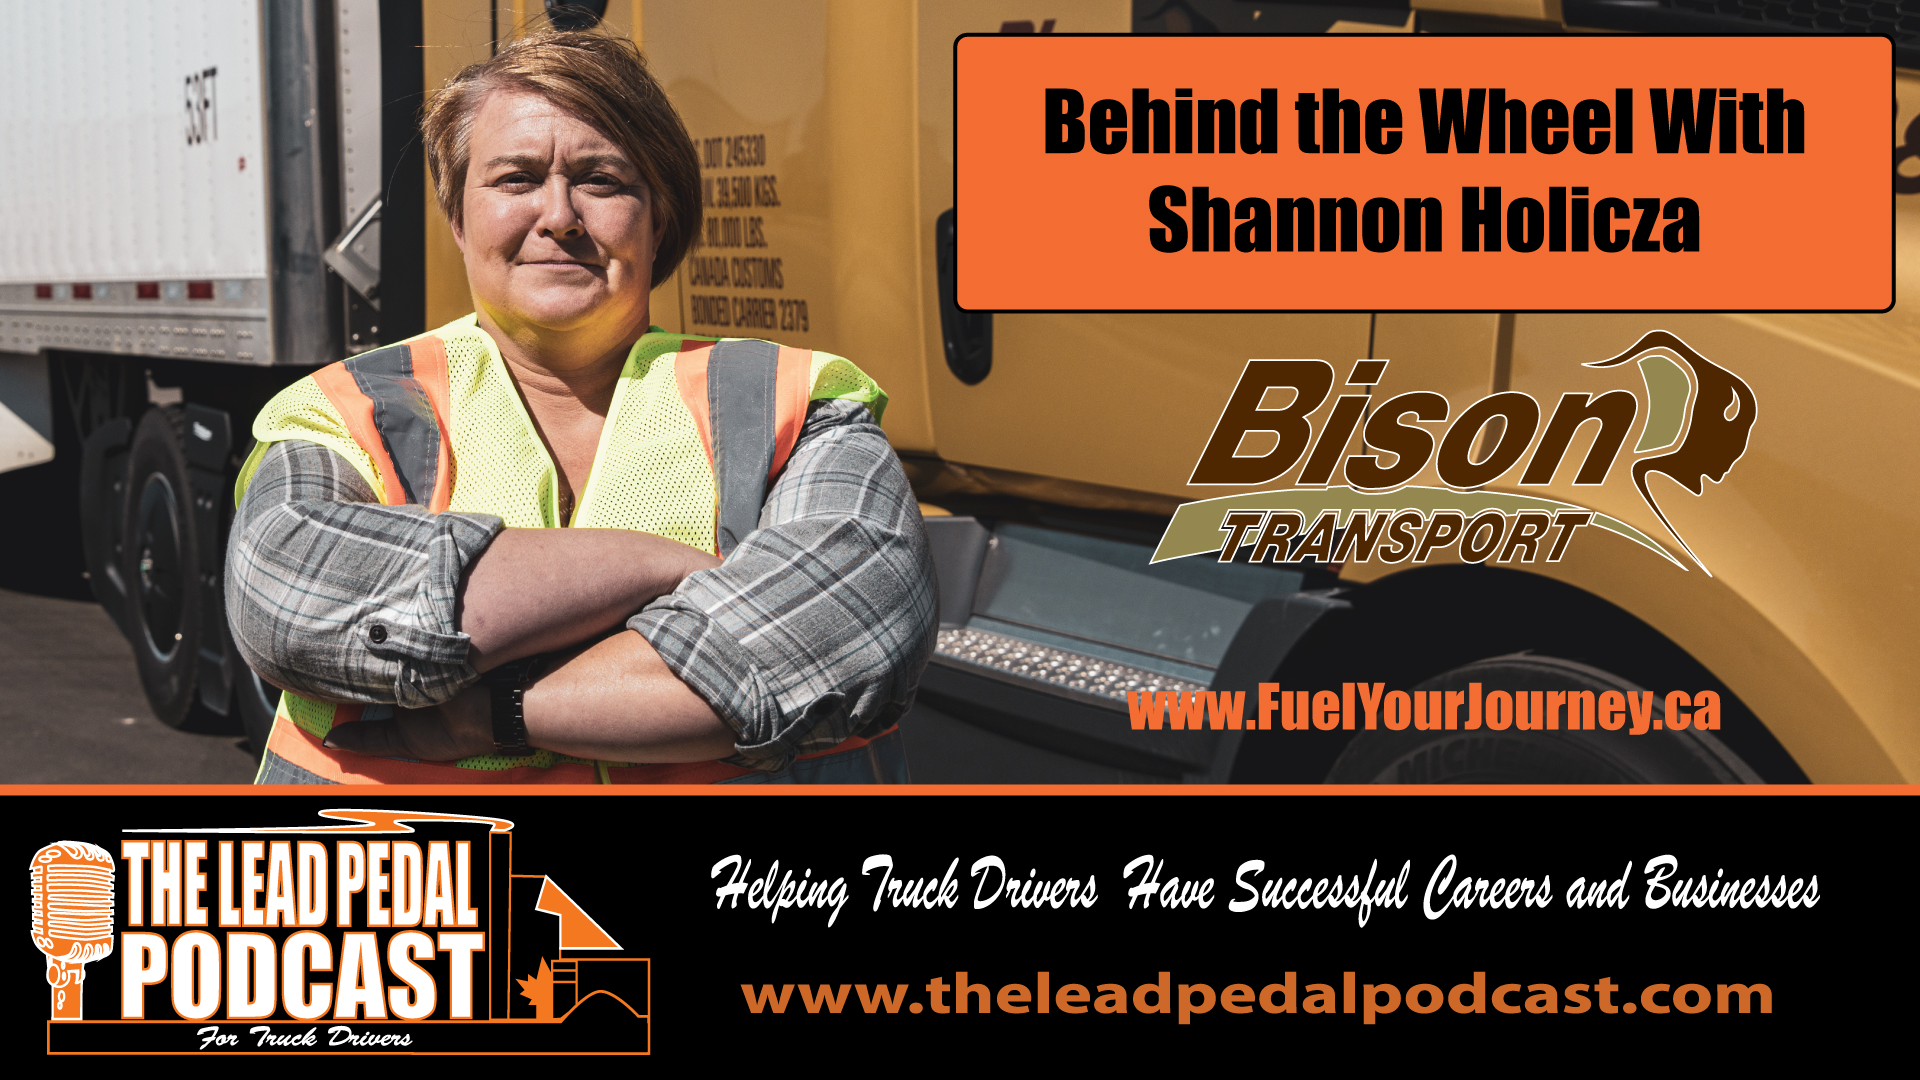 A Career Behind the Wheel with Shannon Holicza